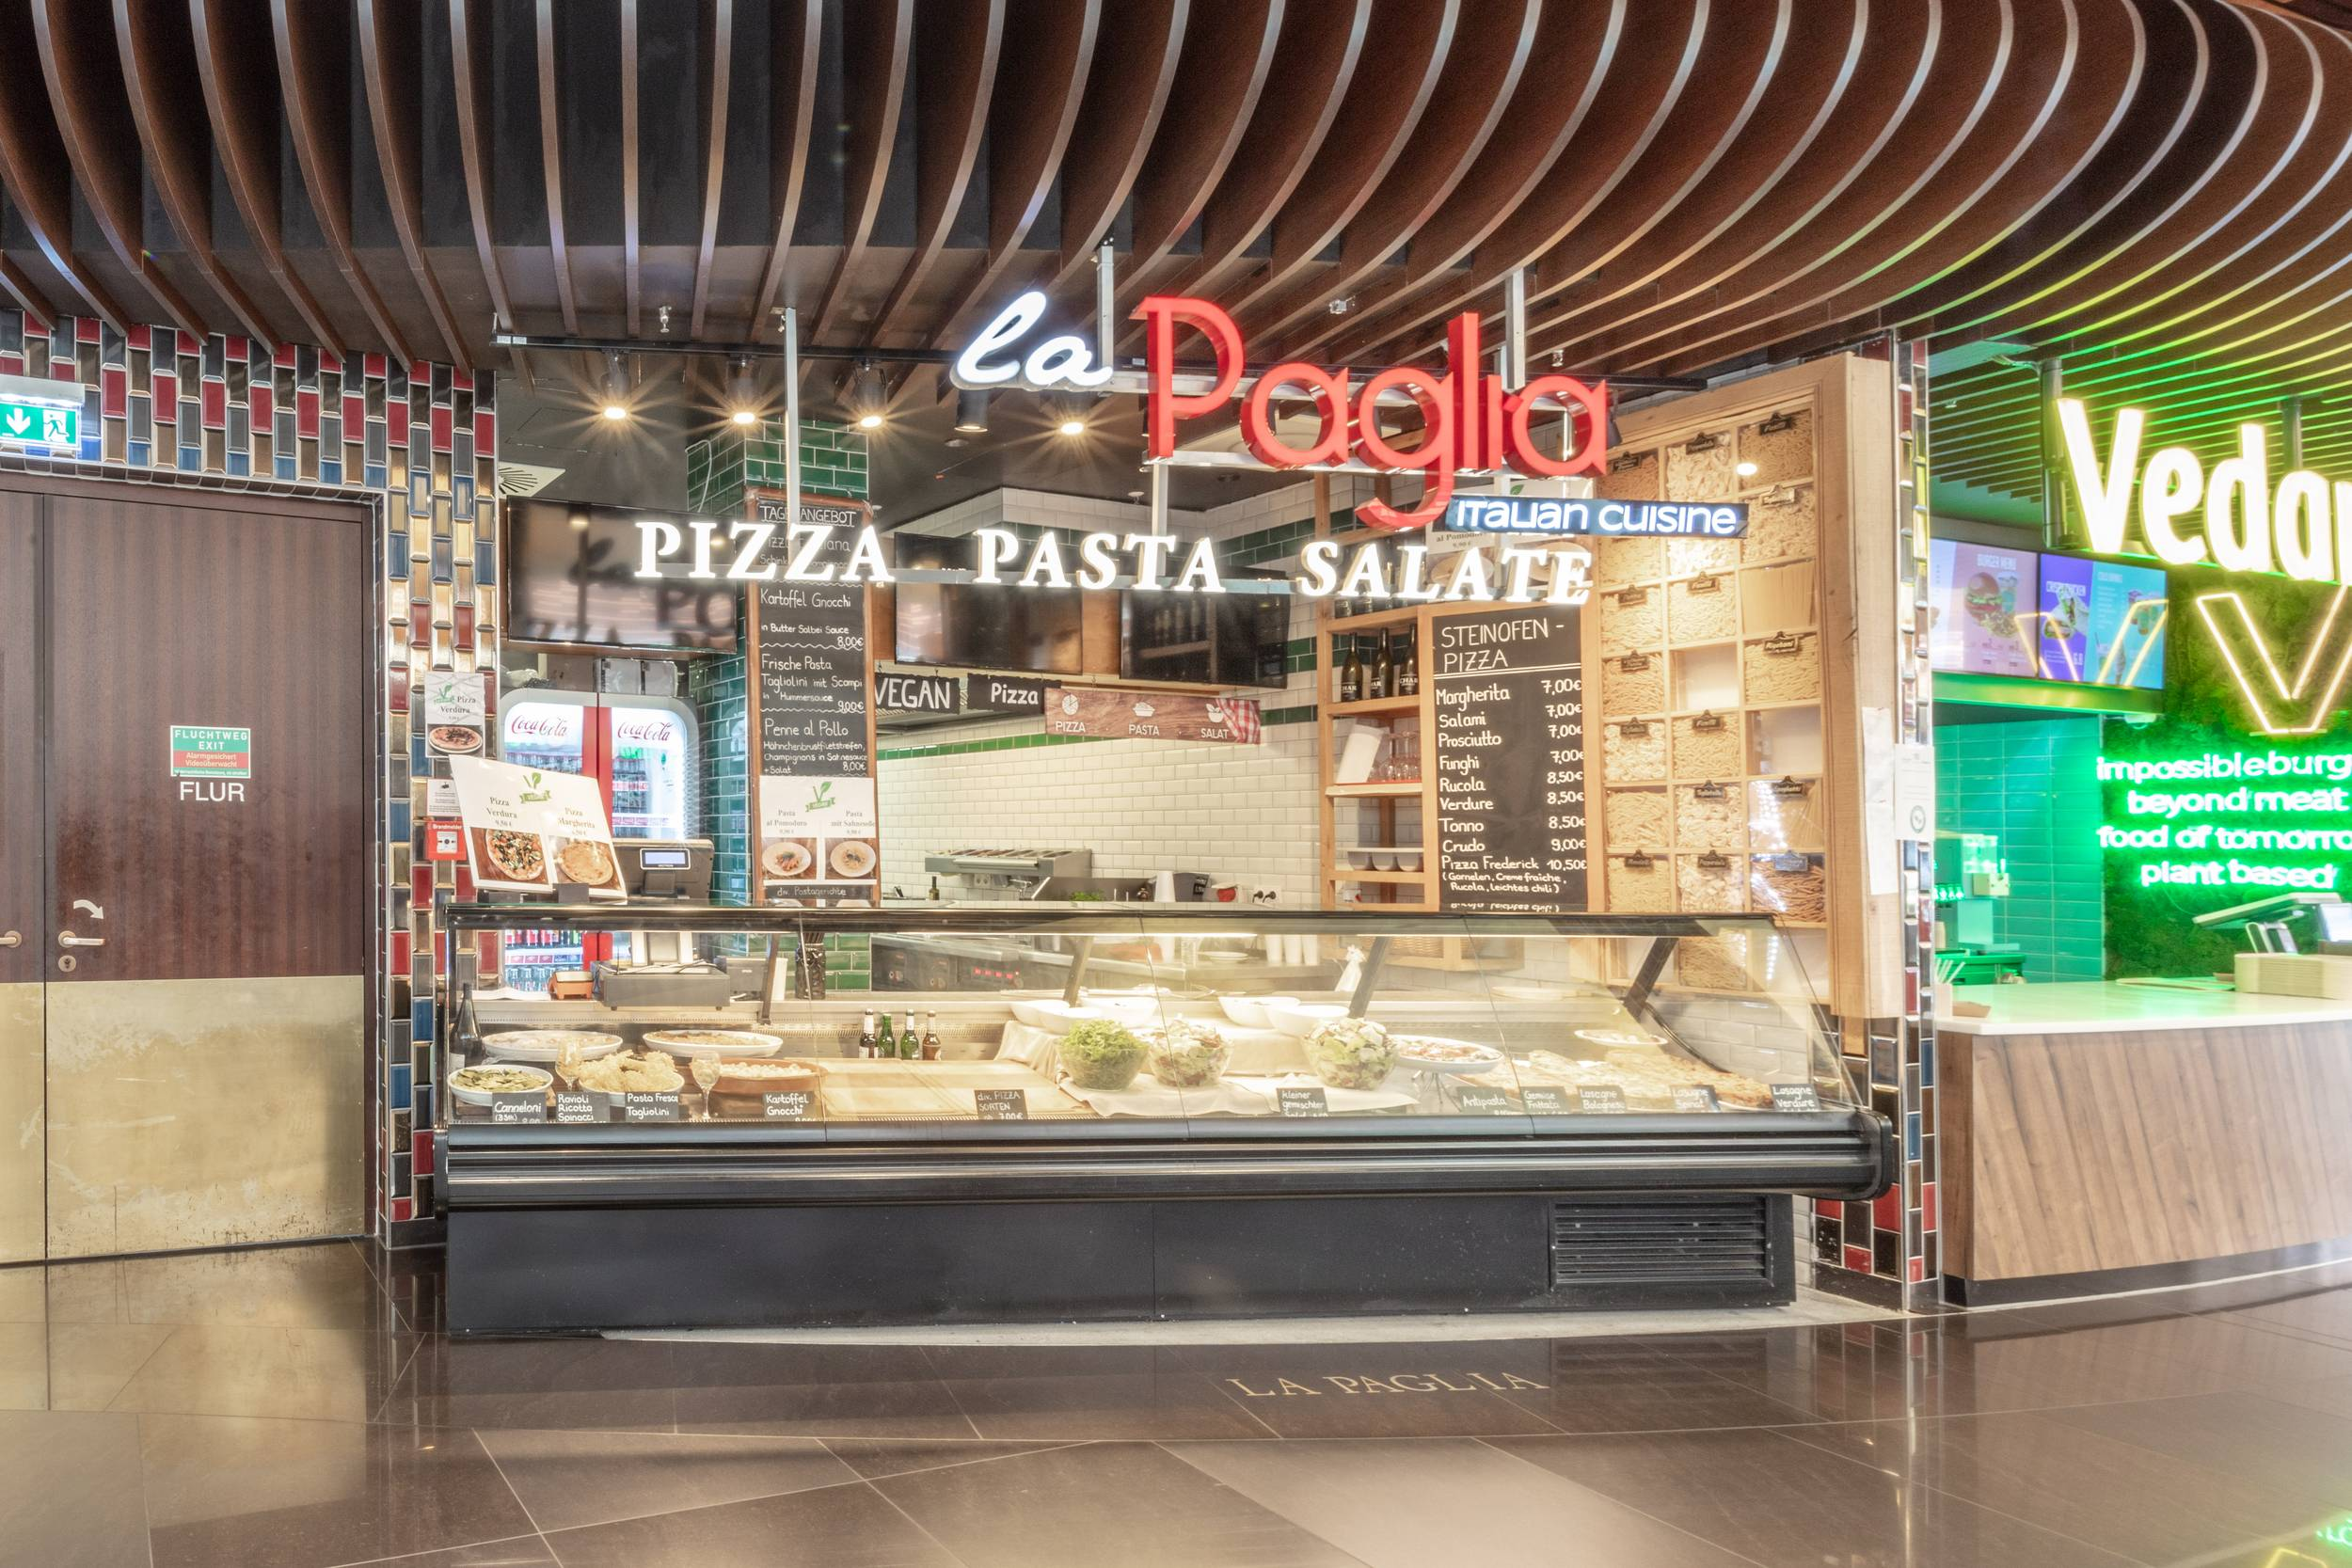 La Paglia at the Mall of Berlin